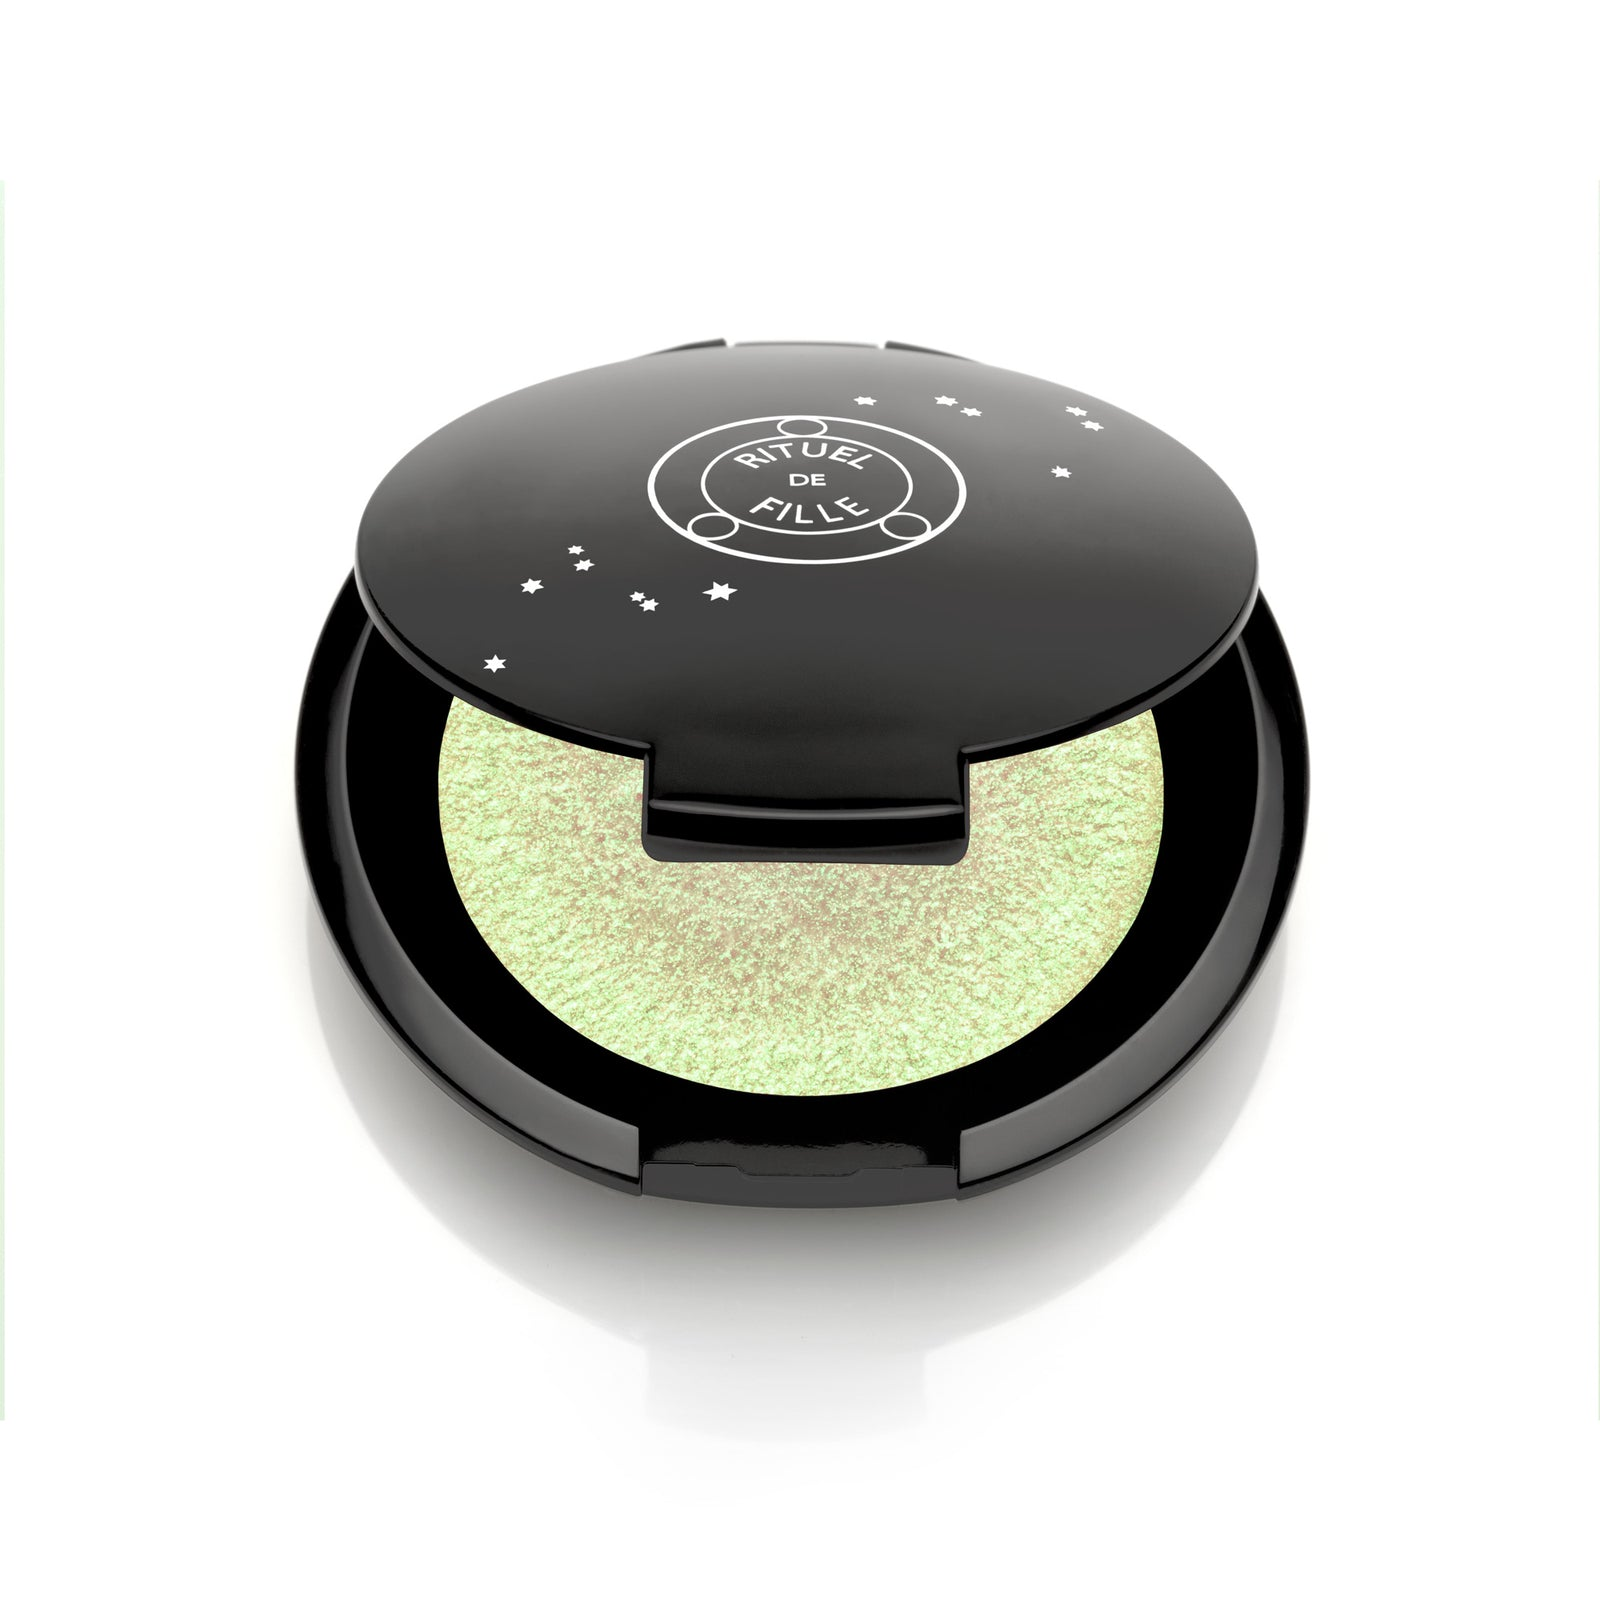 The Chimera | Metamorphic Highlighter - Rituel de Fille